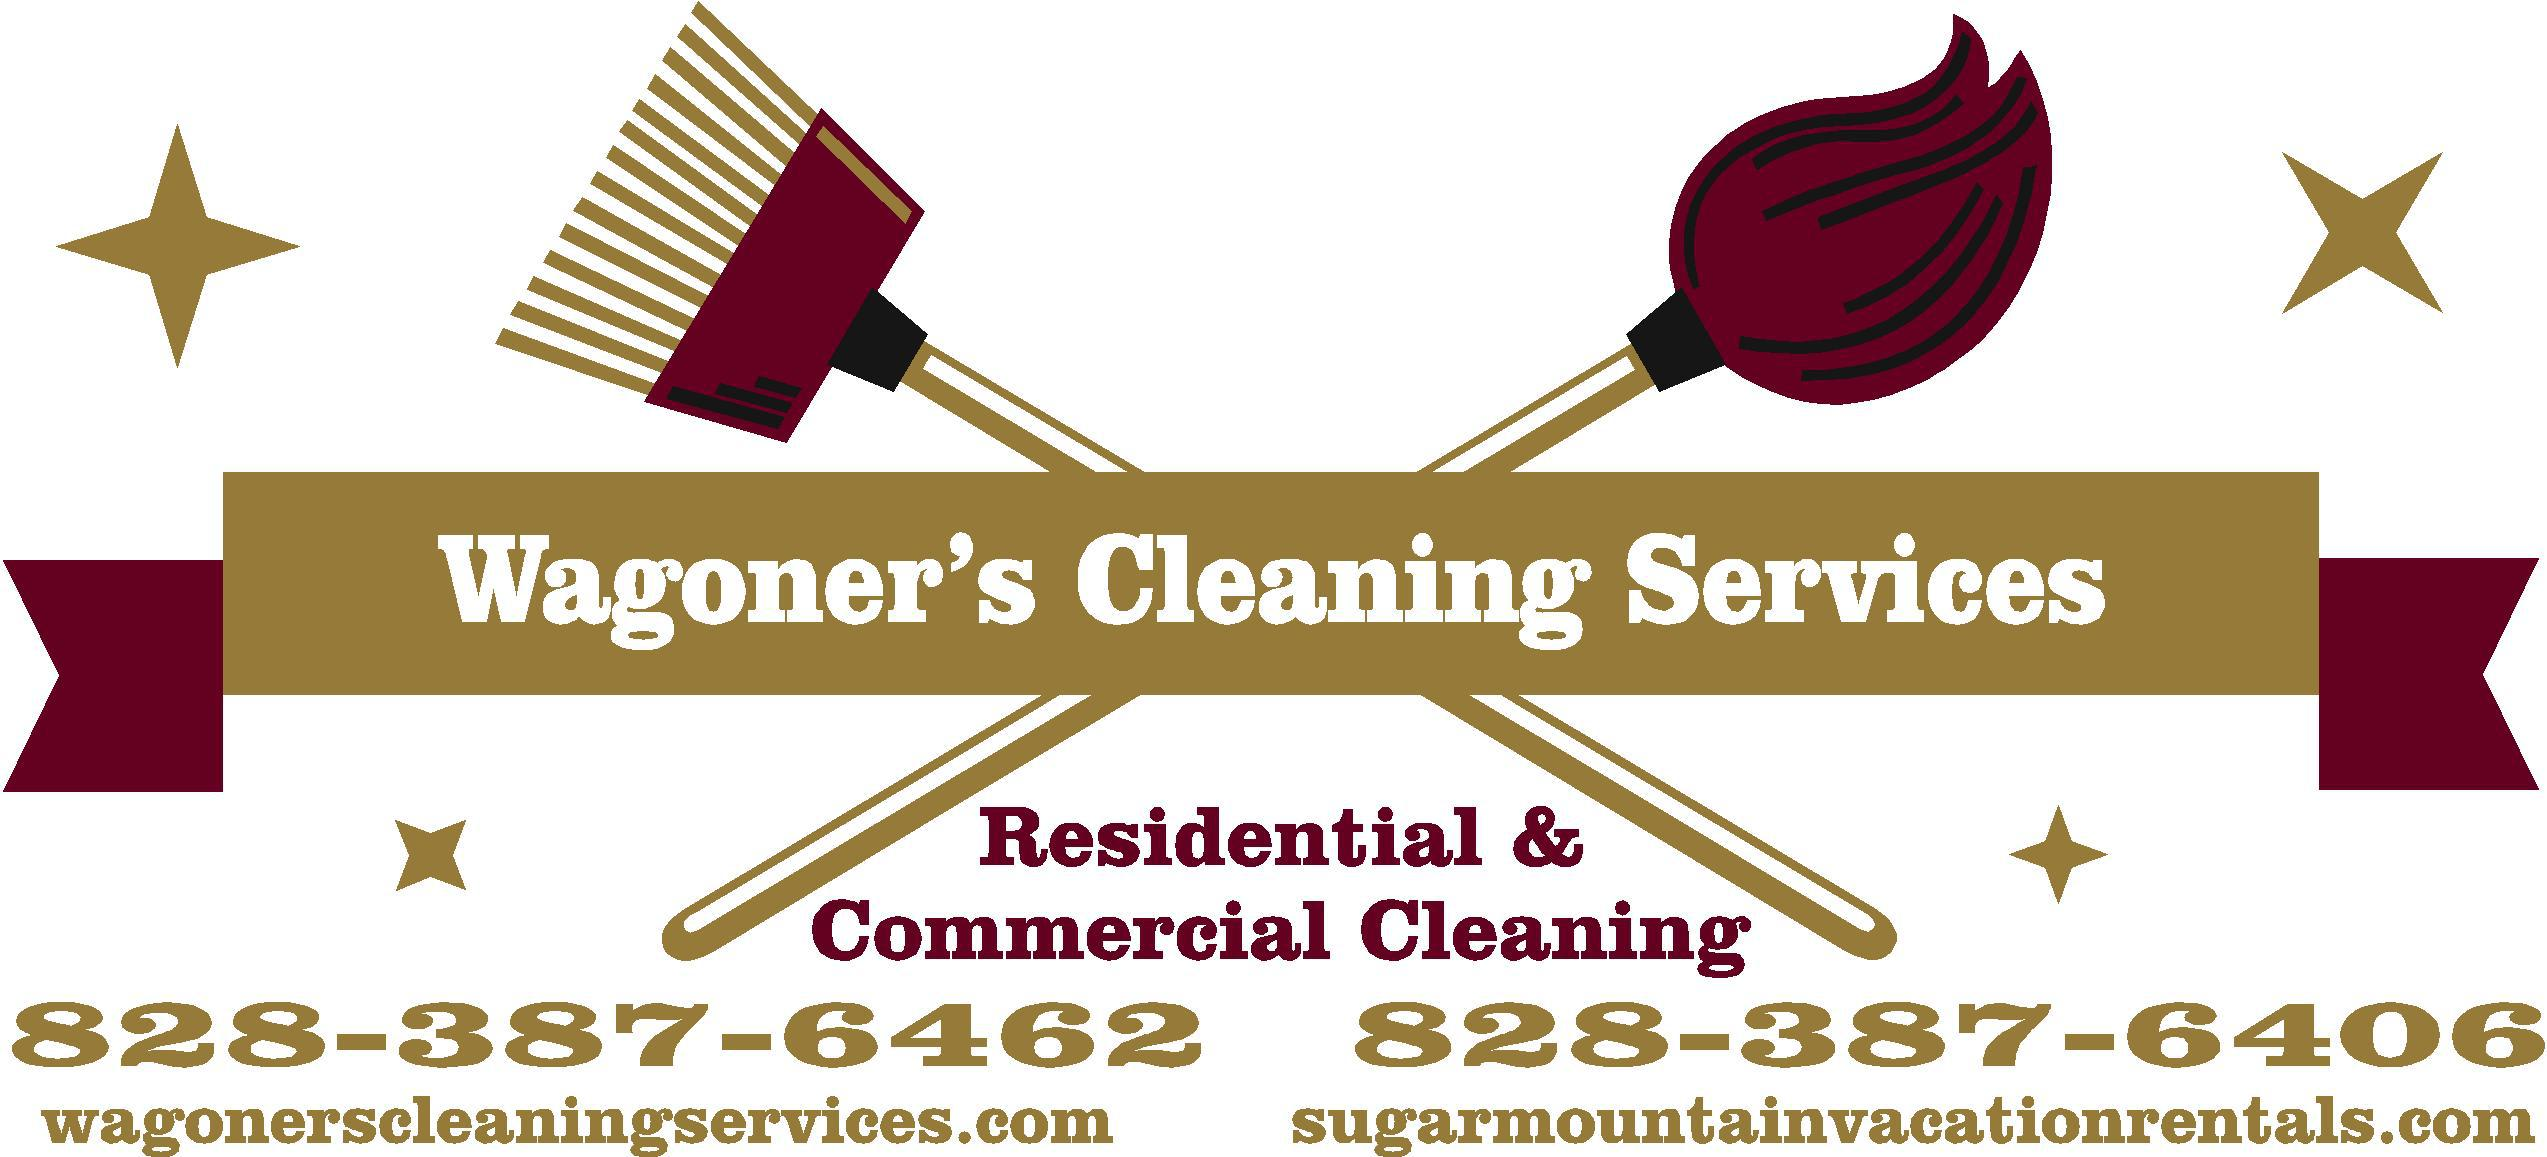 Wagoner's Cleaning Services LLC. Logo